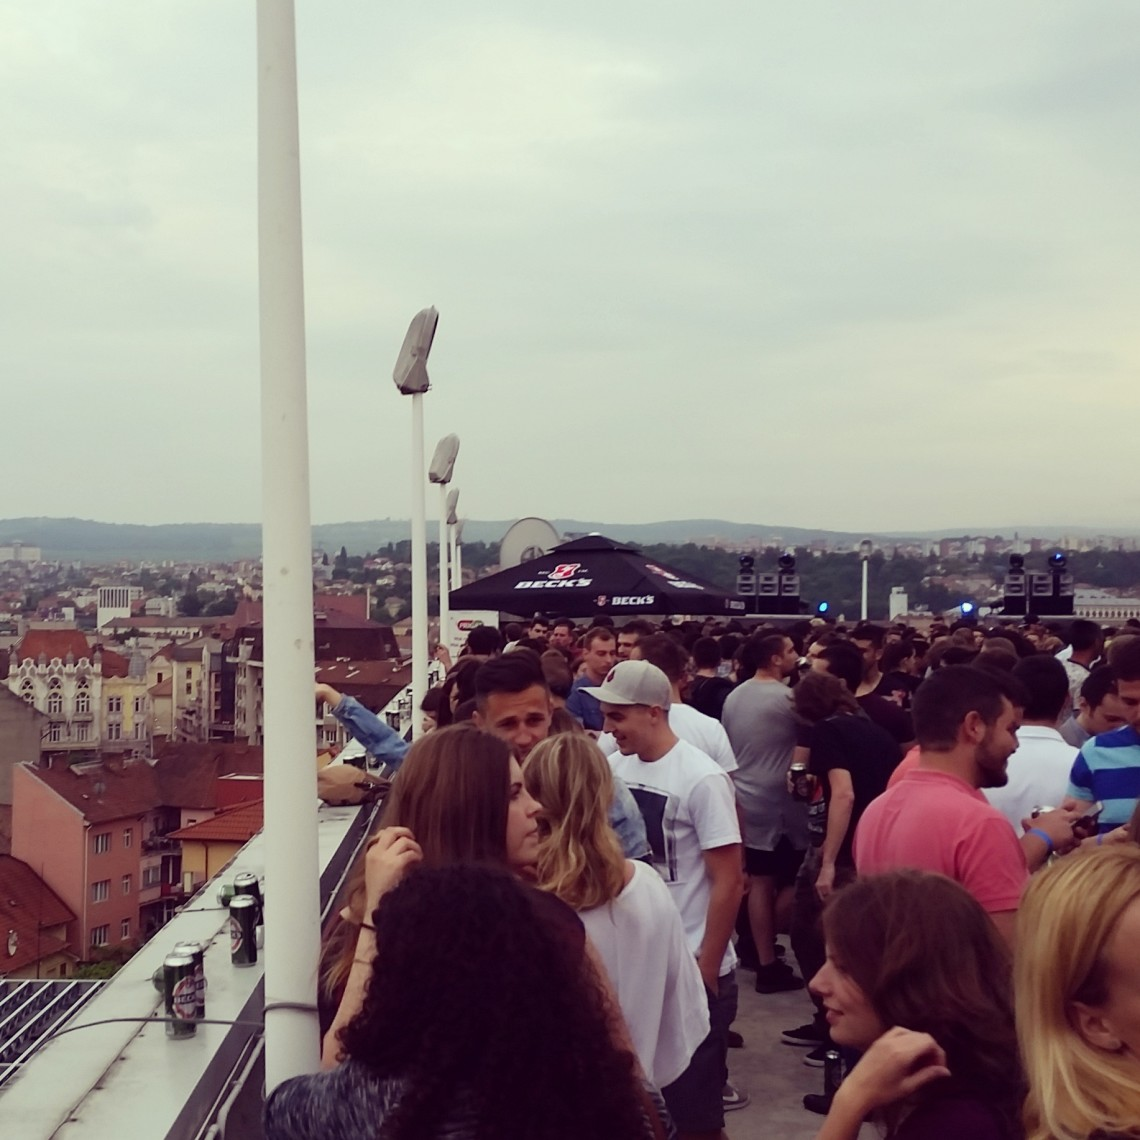 Roof party